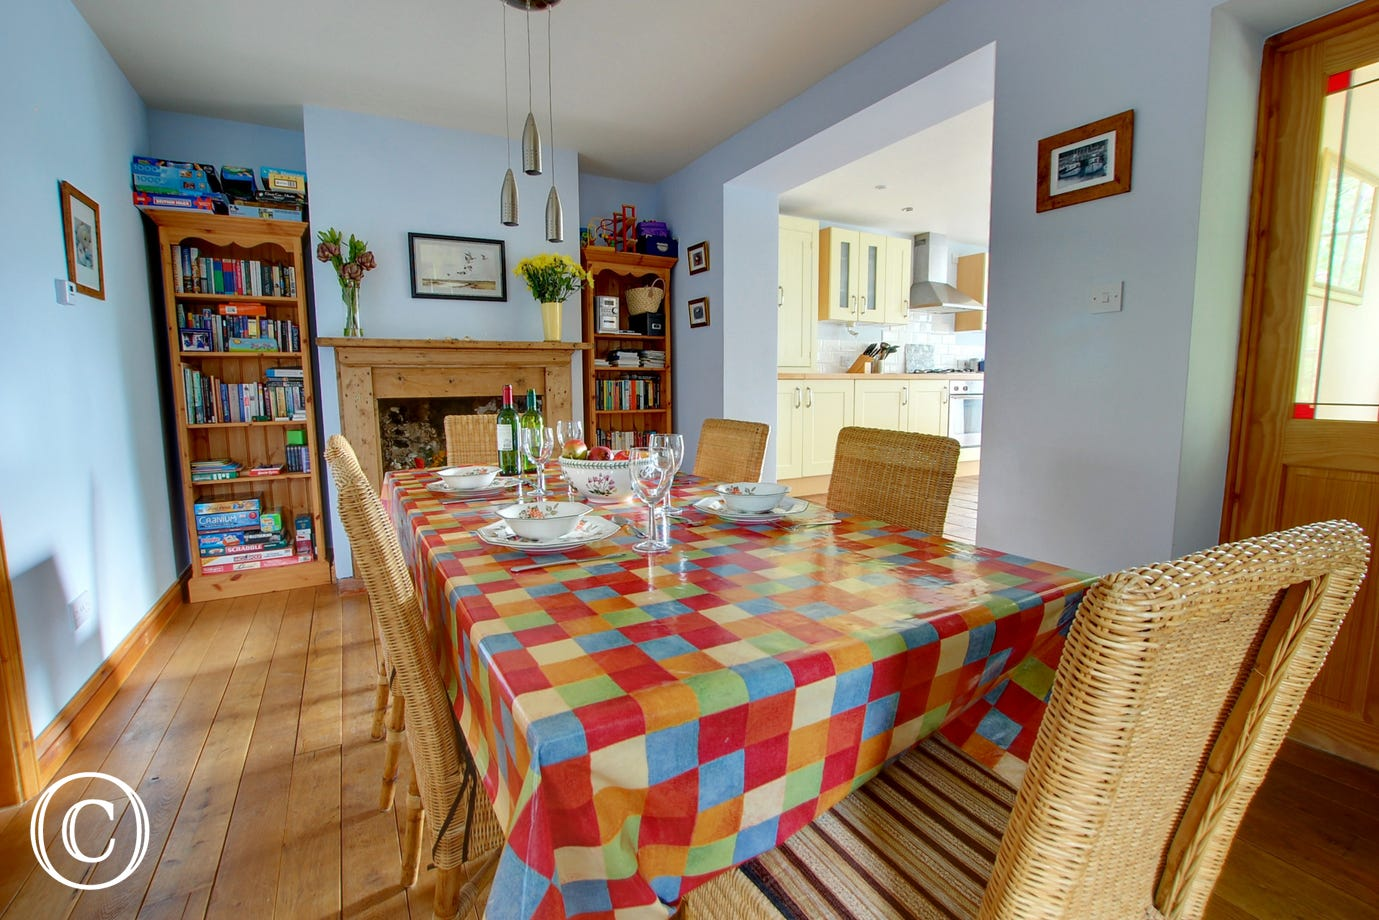 Spacious dining room with a long table and six chairs, a lovely area for family meals